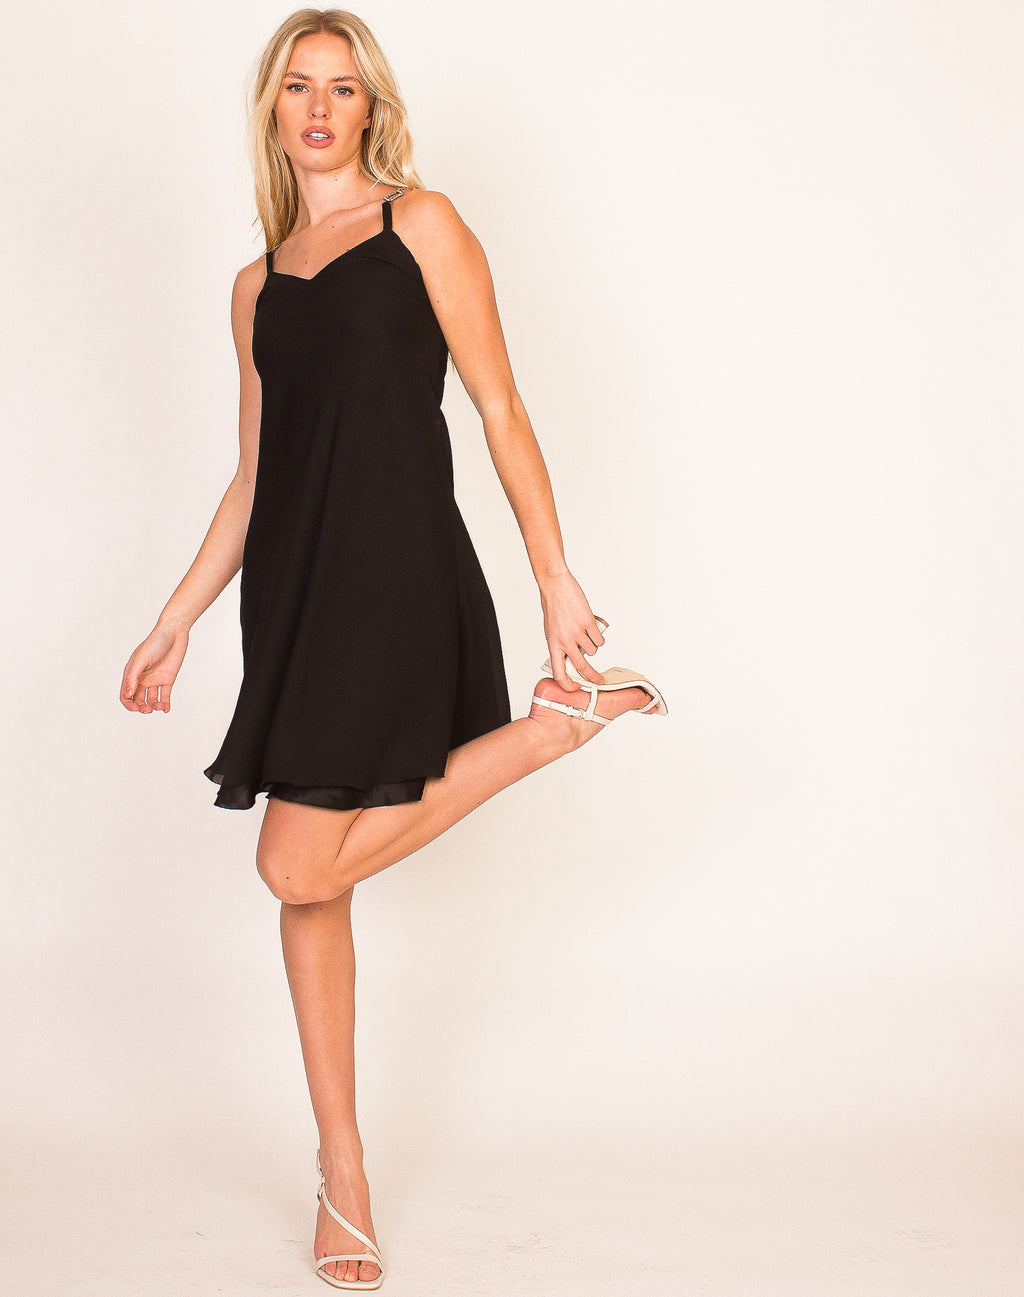 DIAMANTÉ STRAP BLACK SWING DRESS